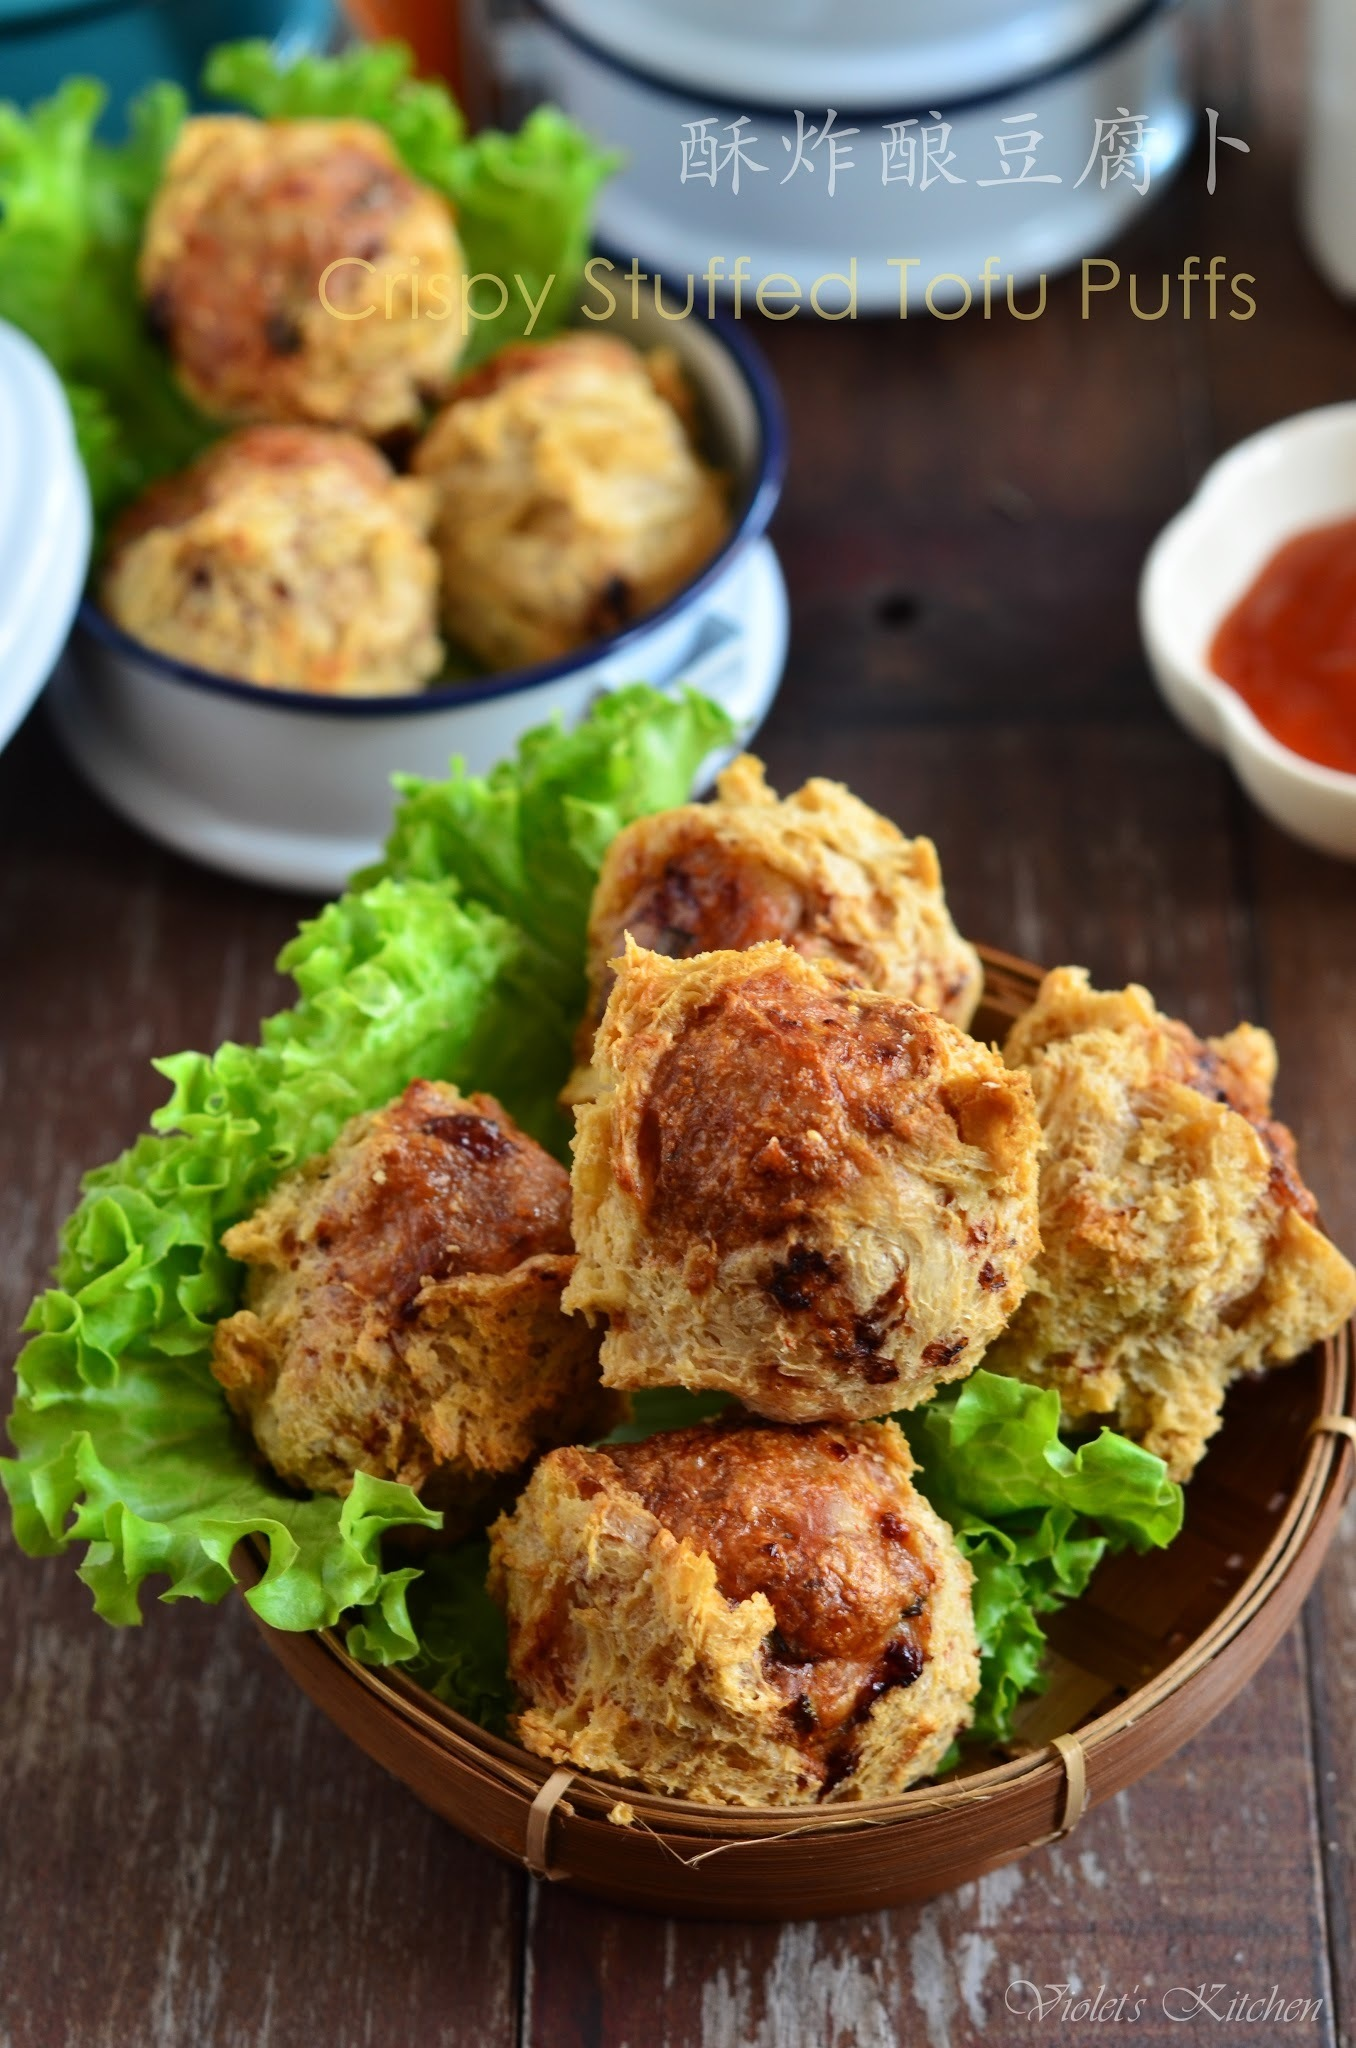 酥炸酿豆腐卜 Crispy Stuffed Tofu Puffs (空气油炸锅版 / Air Fryer Version)